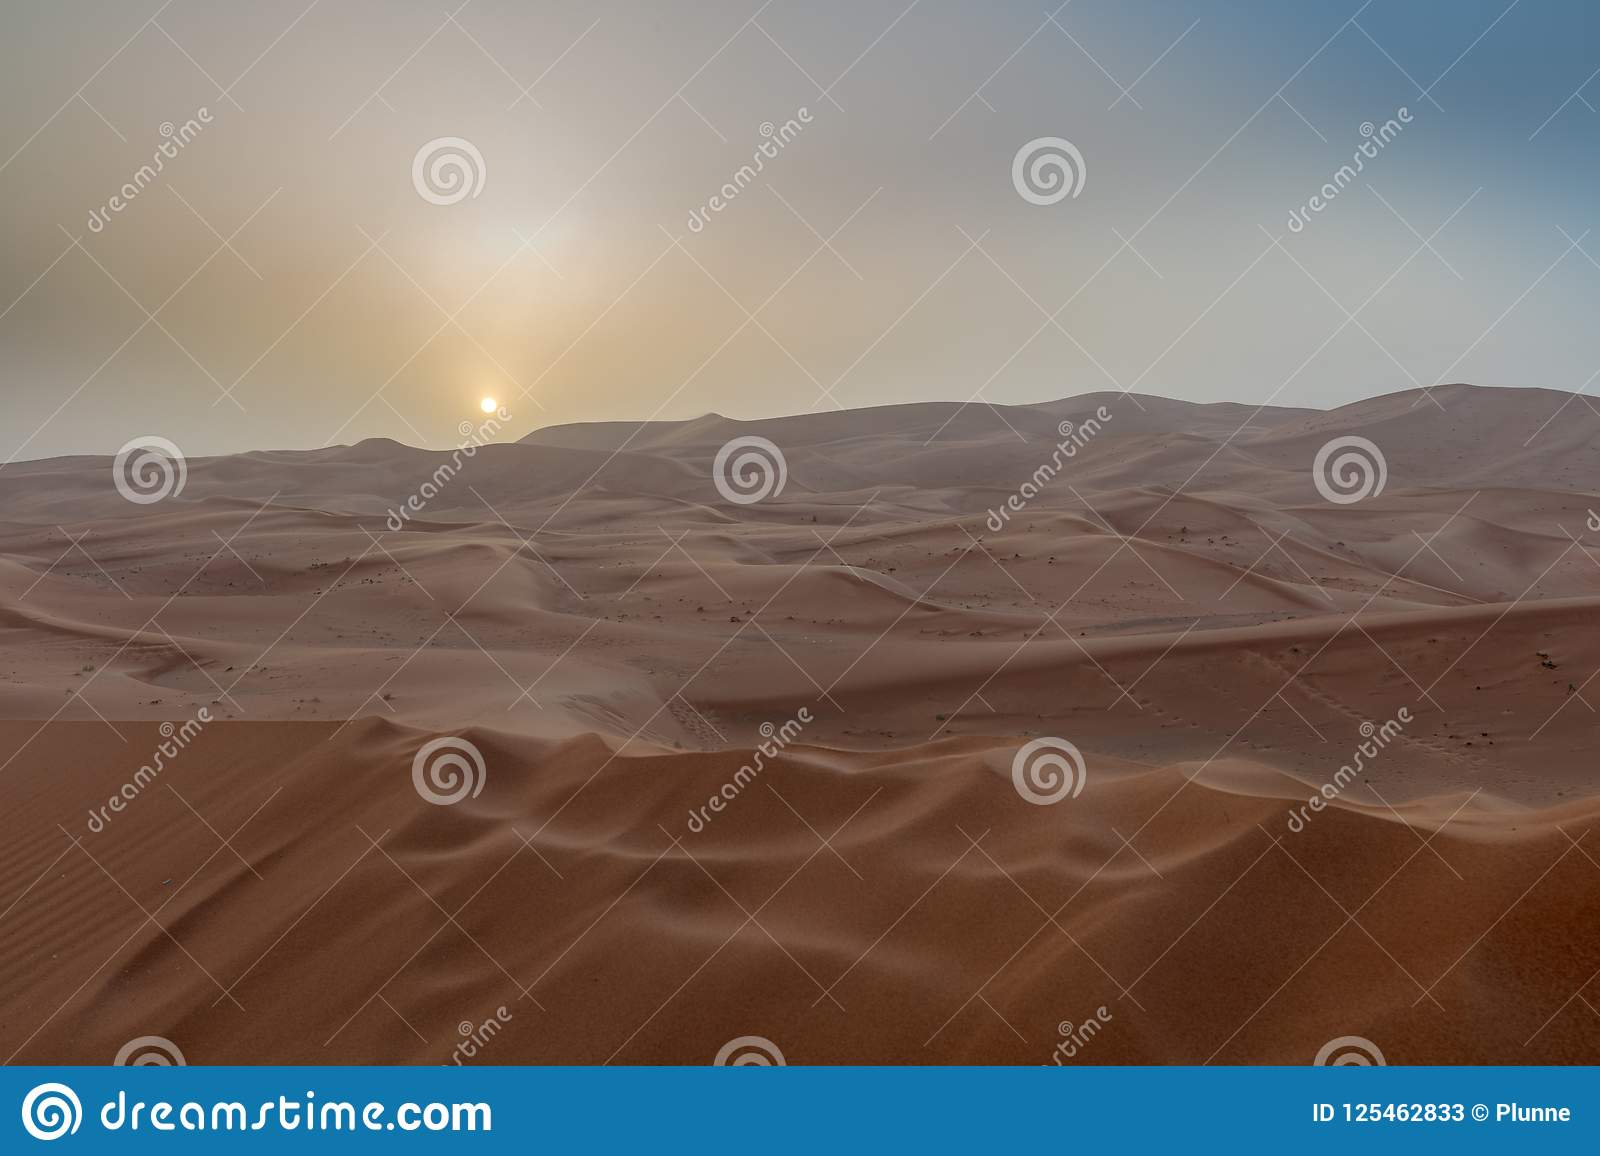 A beautiful yellow sunset in the desert.